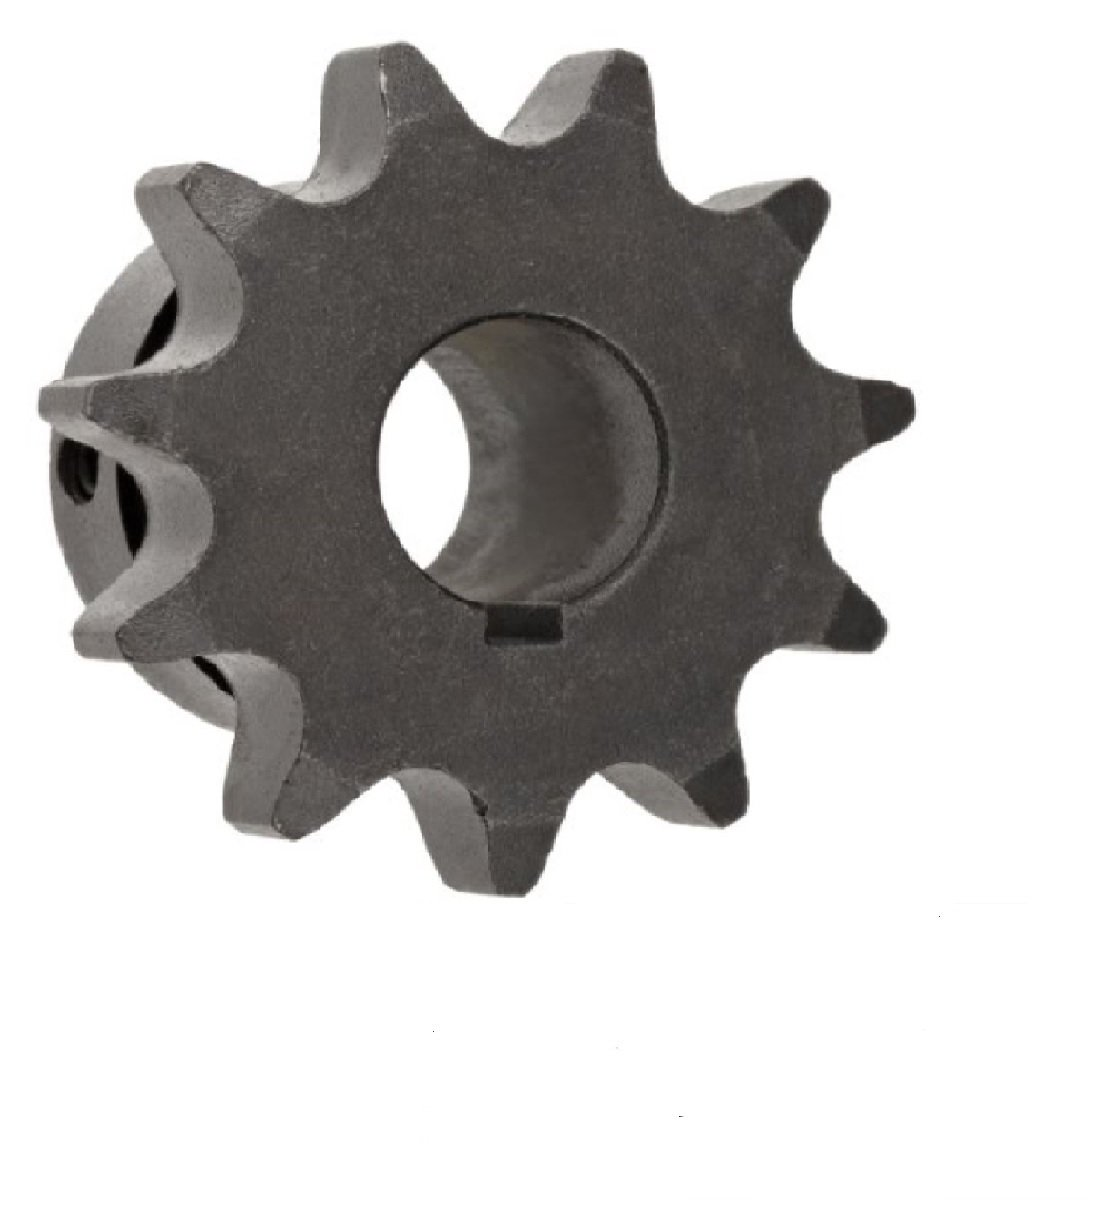 Bored-to-Size Type B Hub #41 Chain 1//2 bore 41BS 10 Roller Chain Sprocket